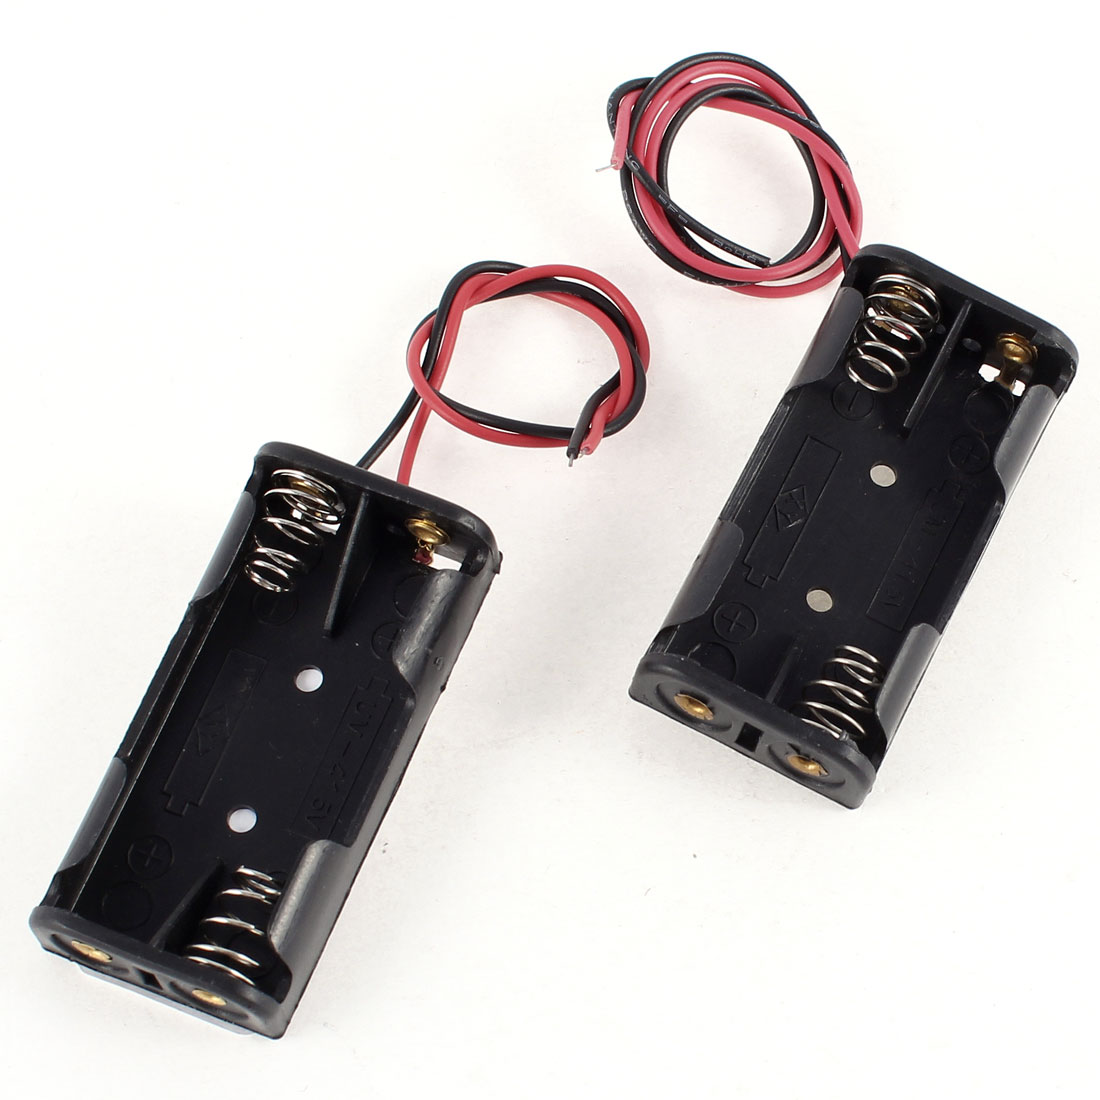 2 Pcs Black Plastic Battery Holder Case Wired Leads for 2 x 1.5V AAA Batteries